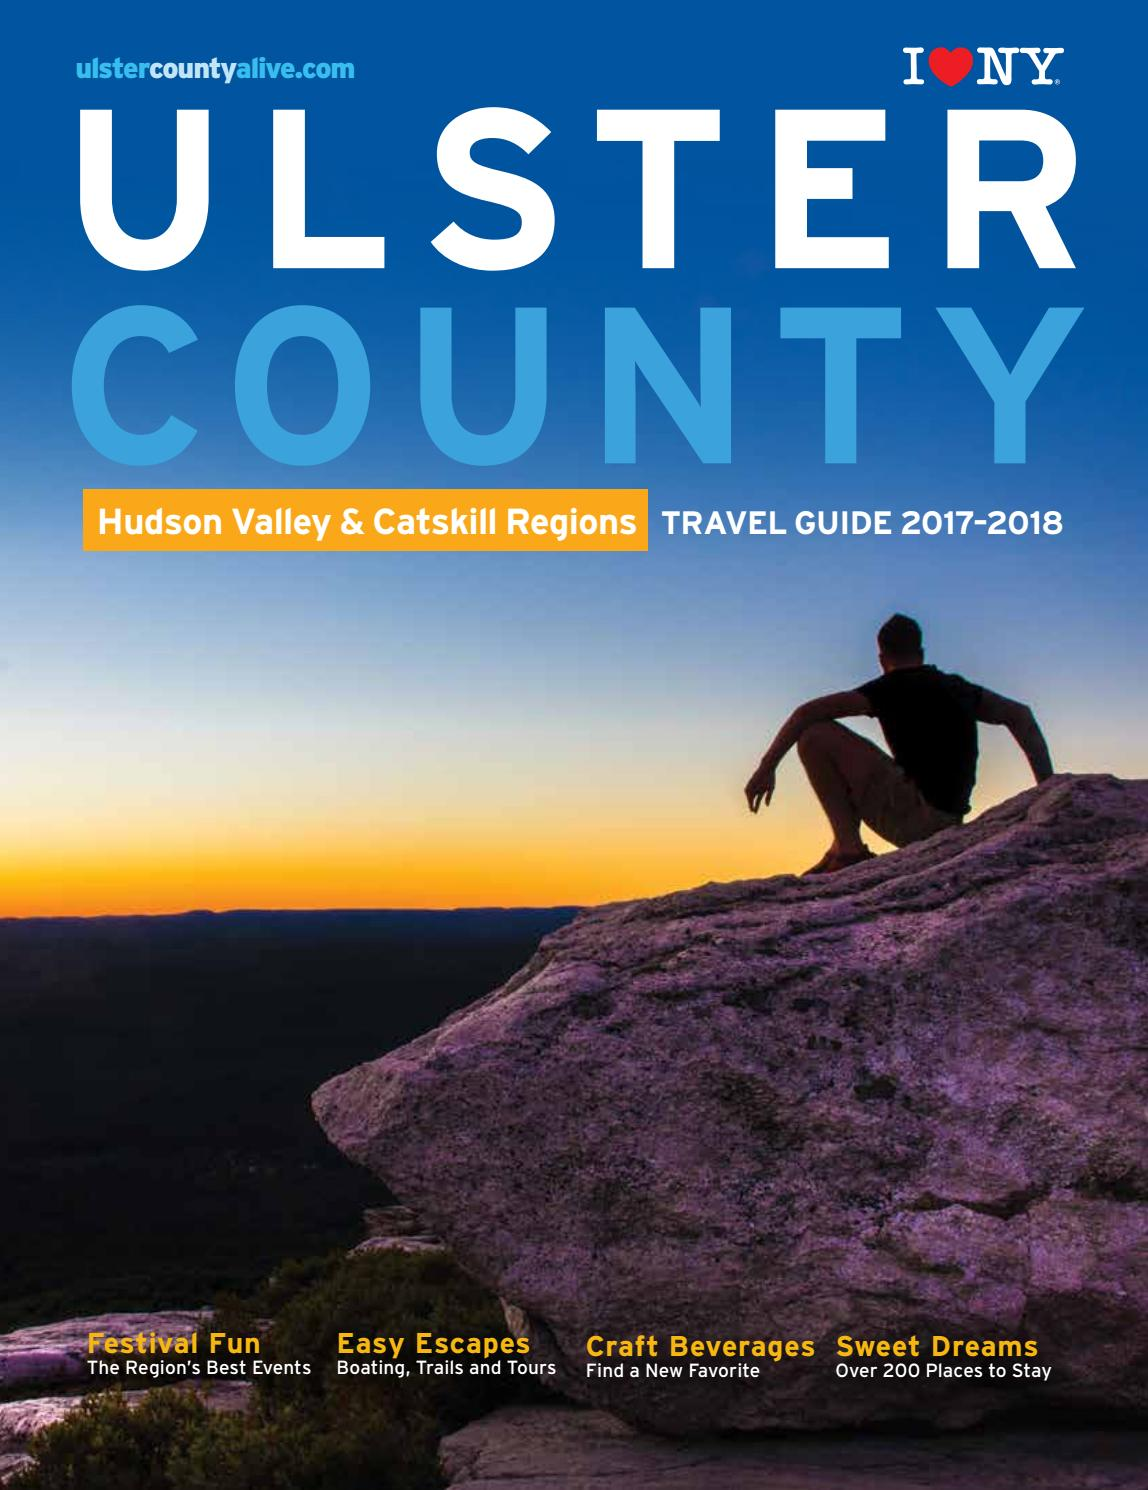 Ulster County Travel Guide 2017-2018 by Luminary Media - issuu